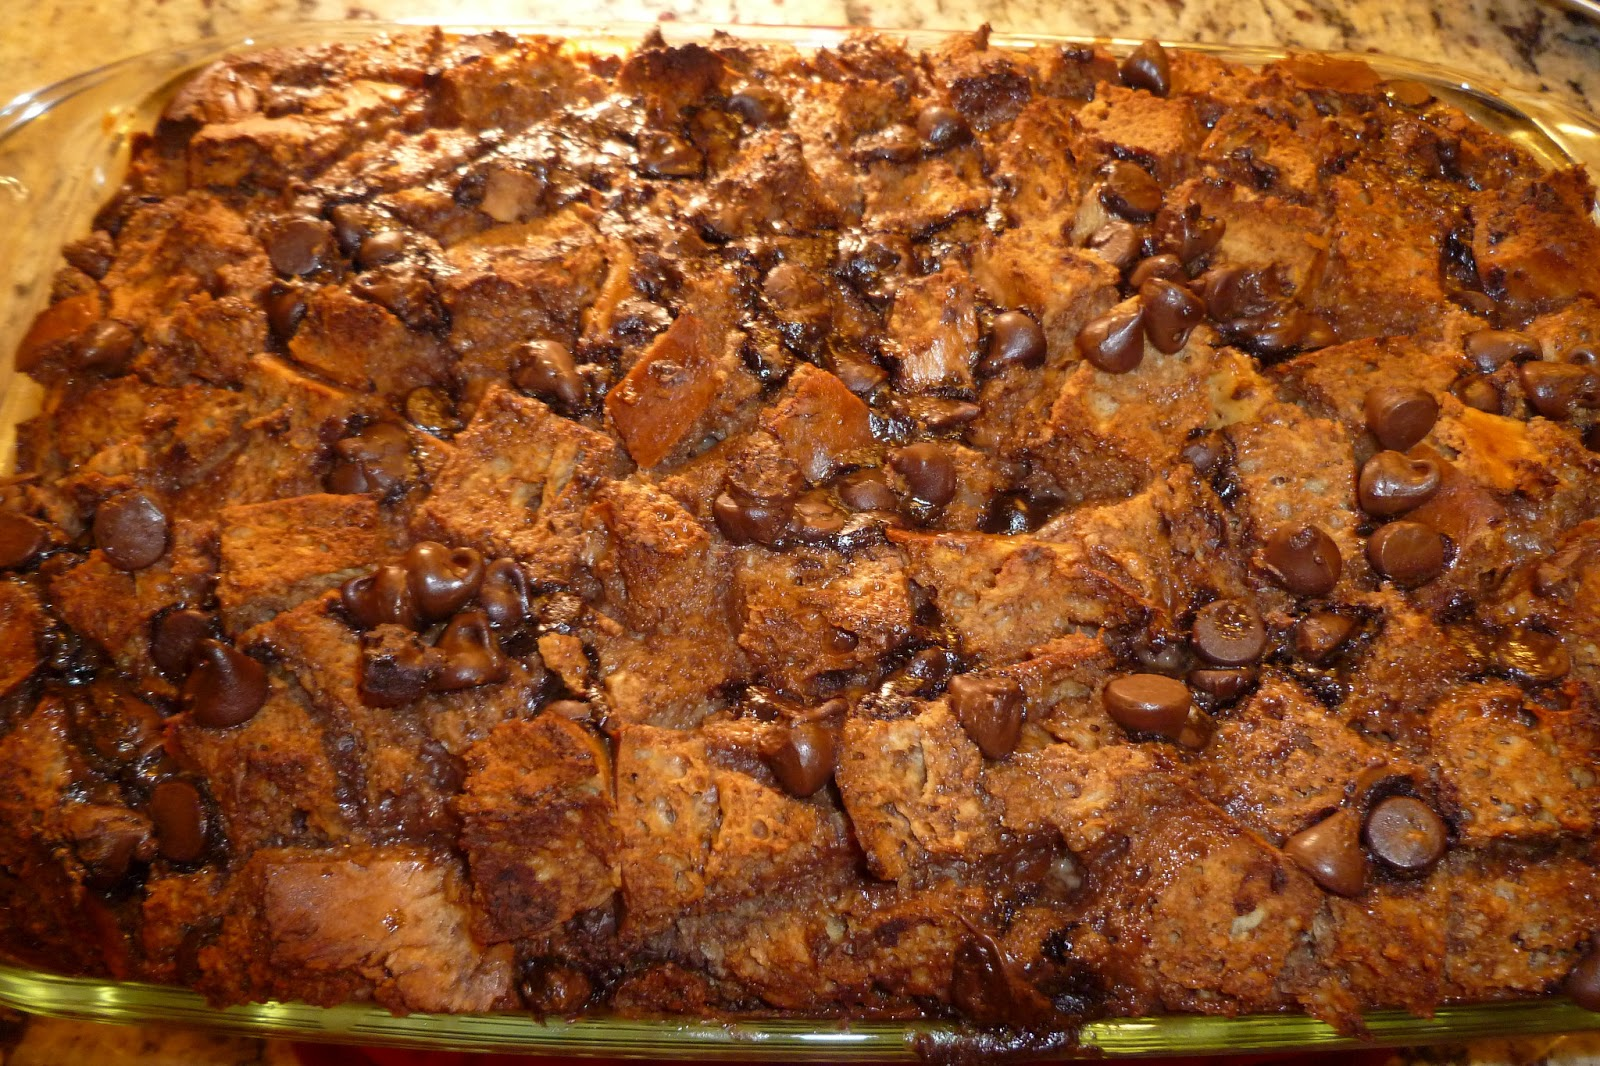 The Pastry Chef S Baking Double Chocolate Bread Pudding